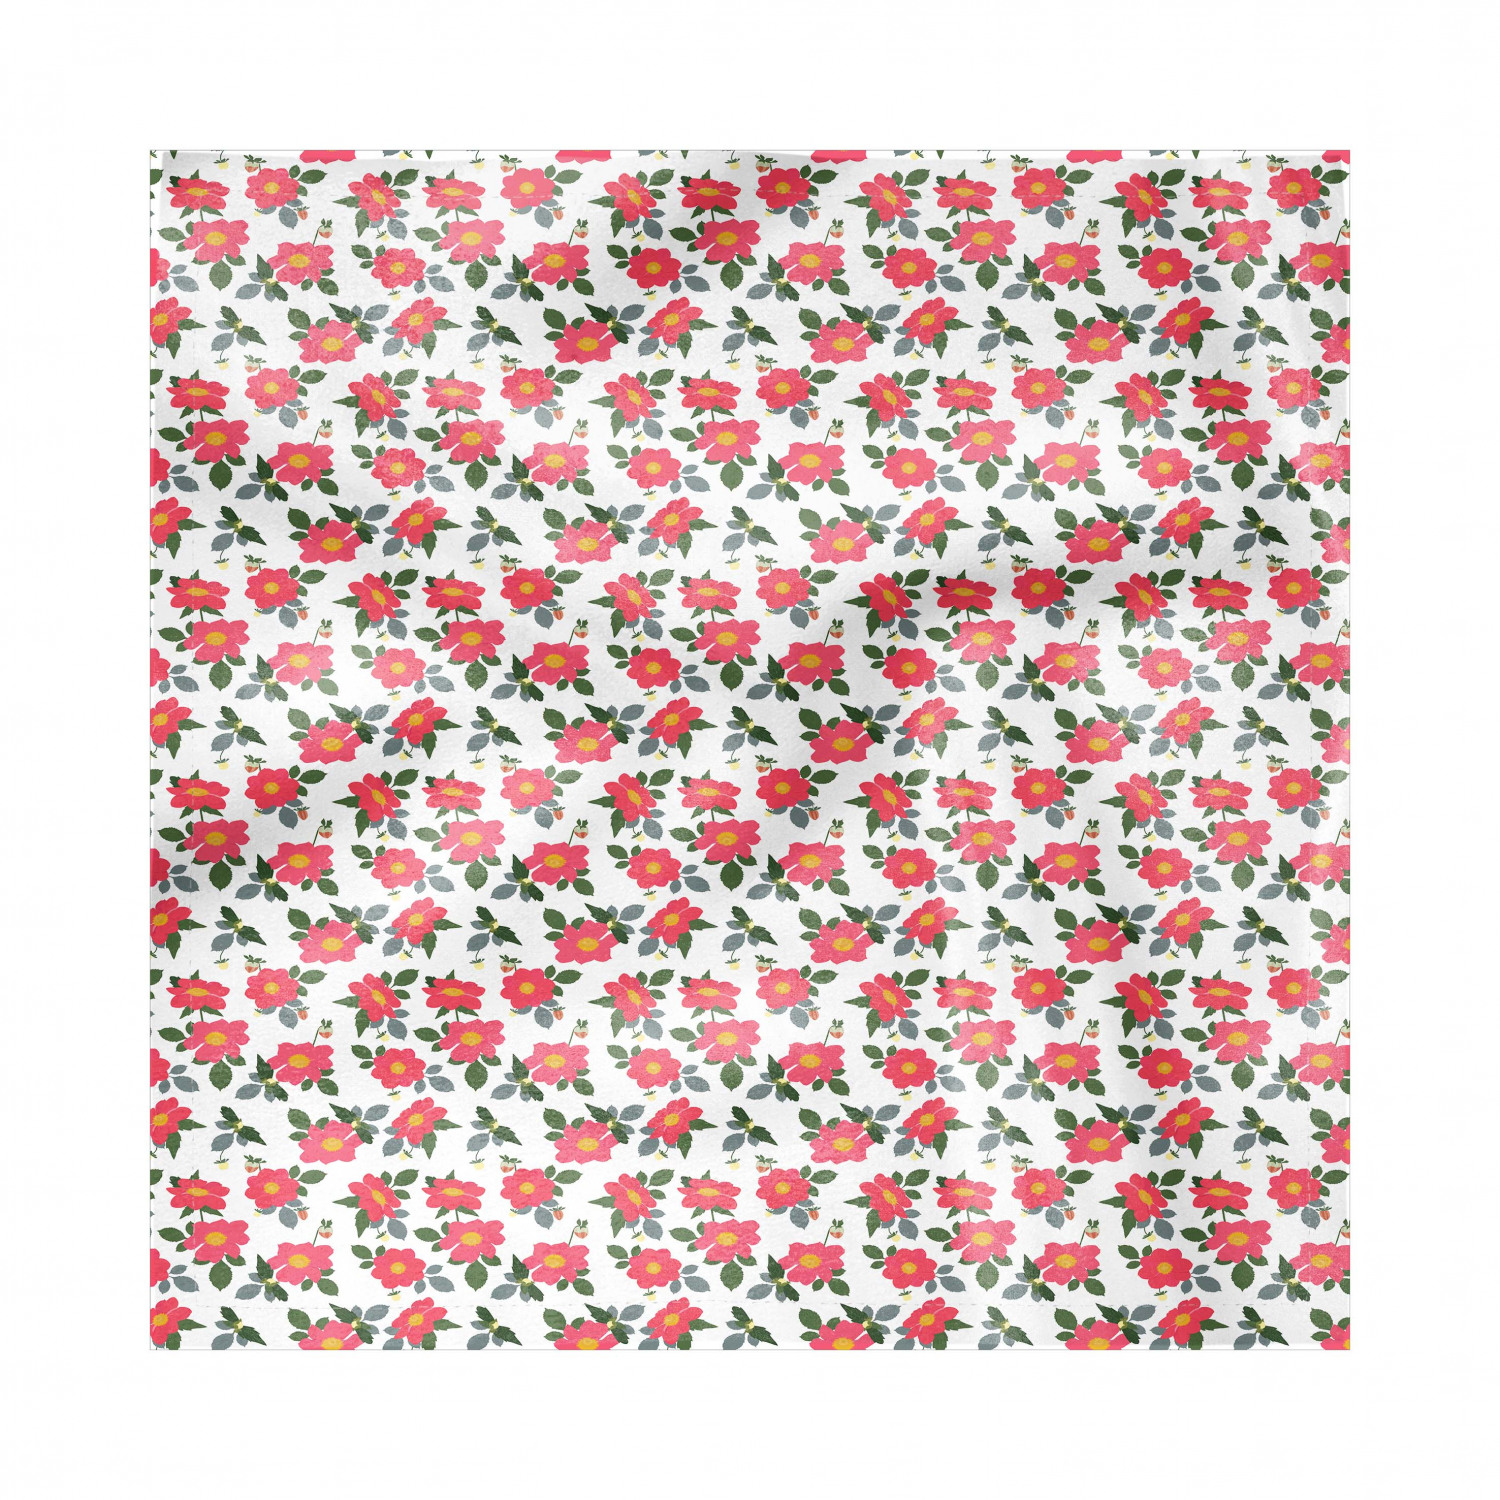 Geraniums Napkins Set Of 4 Dark Coral Colored Flowers With Buds And Leaves On Plain Backdrop Art Silky Satin Fabric For Brunch Dinner Buffet Party By Ambesonne Walmart Com Walmart Com